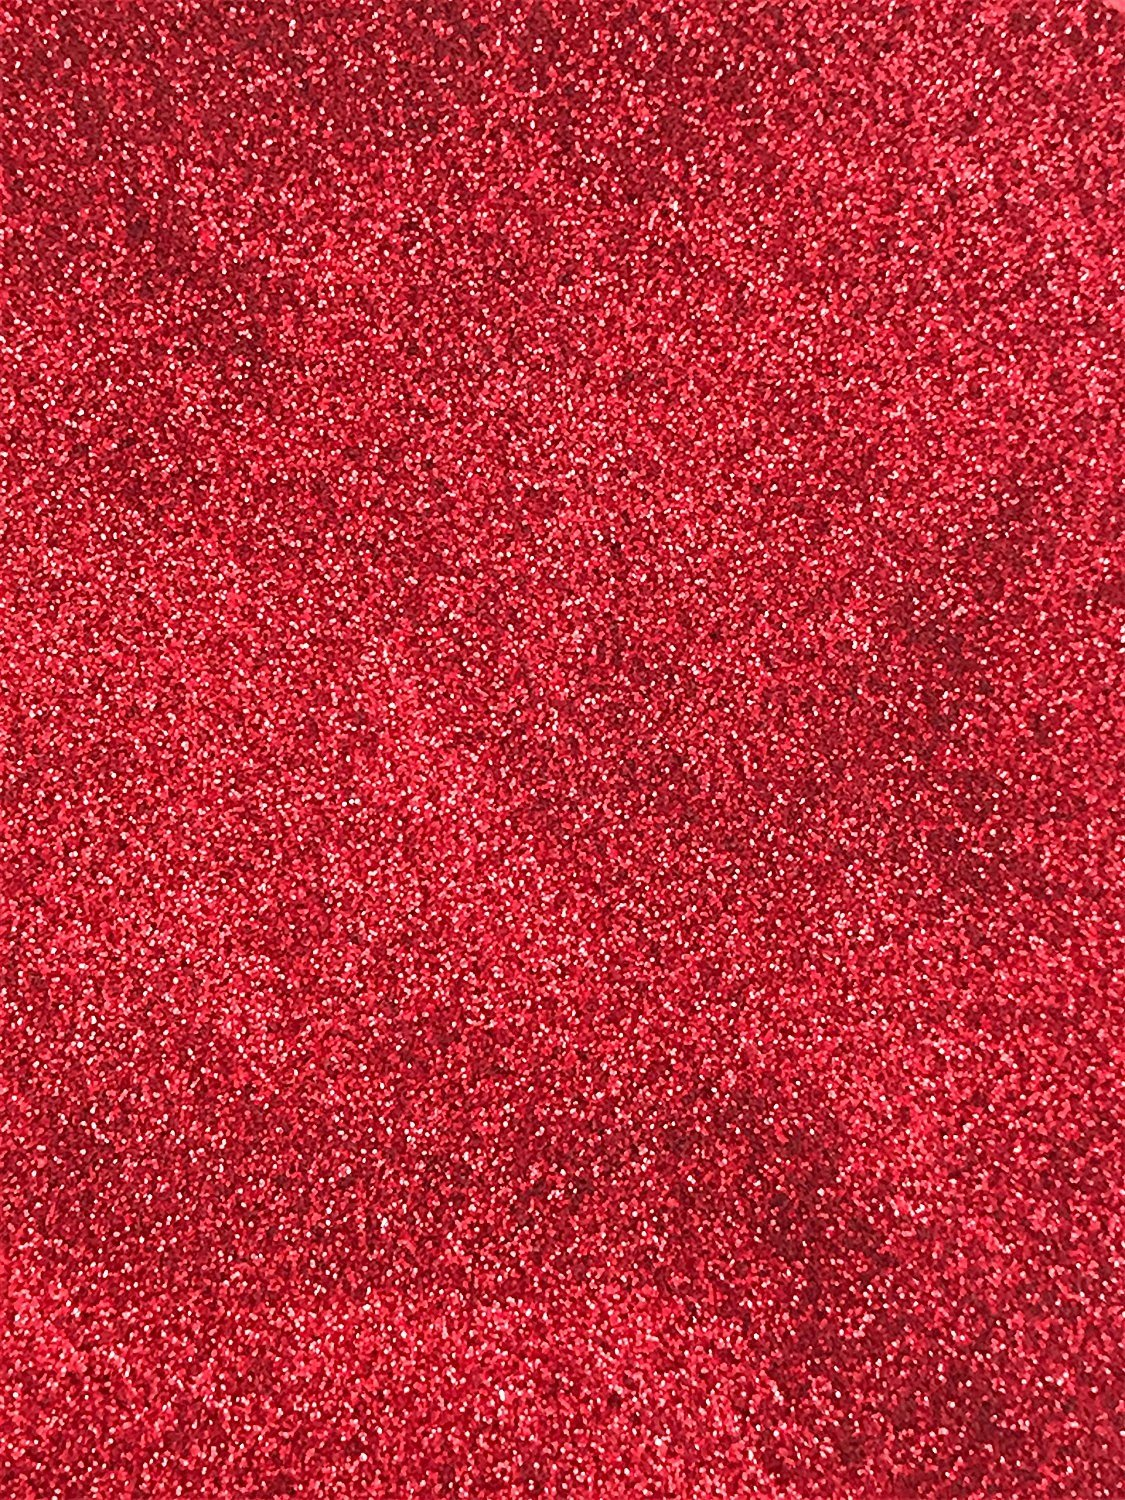 Red Biodegradable Cosmetic Glitter (10 Grams) Trixxi